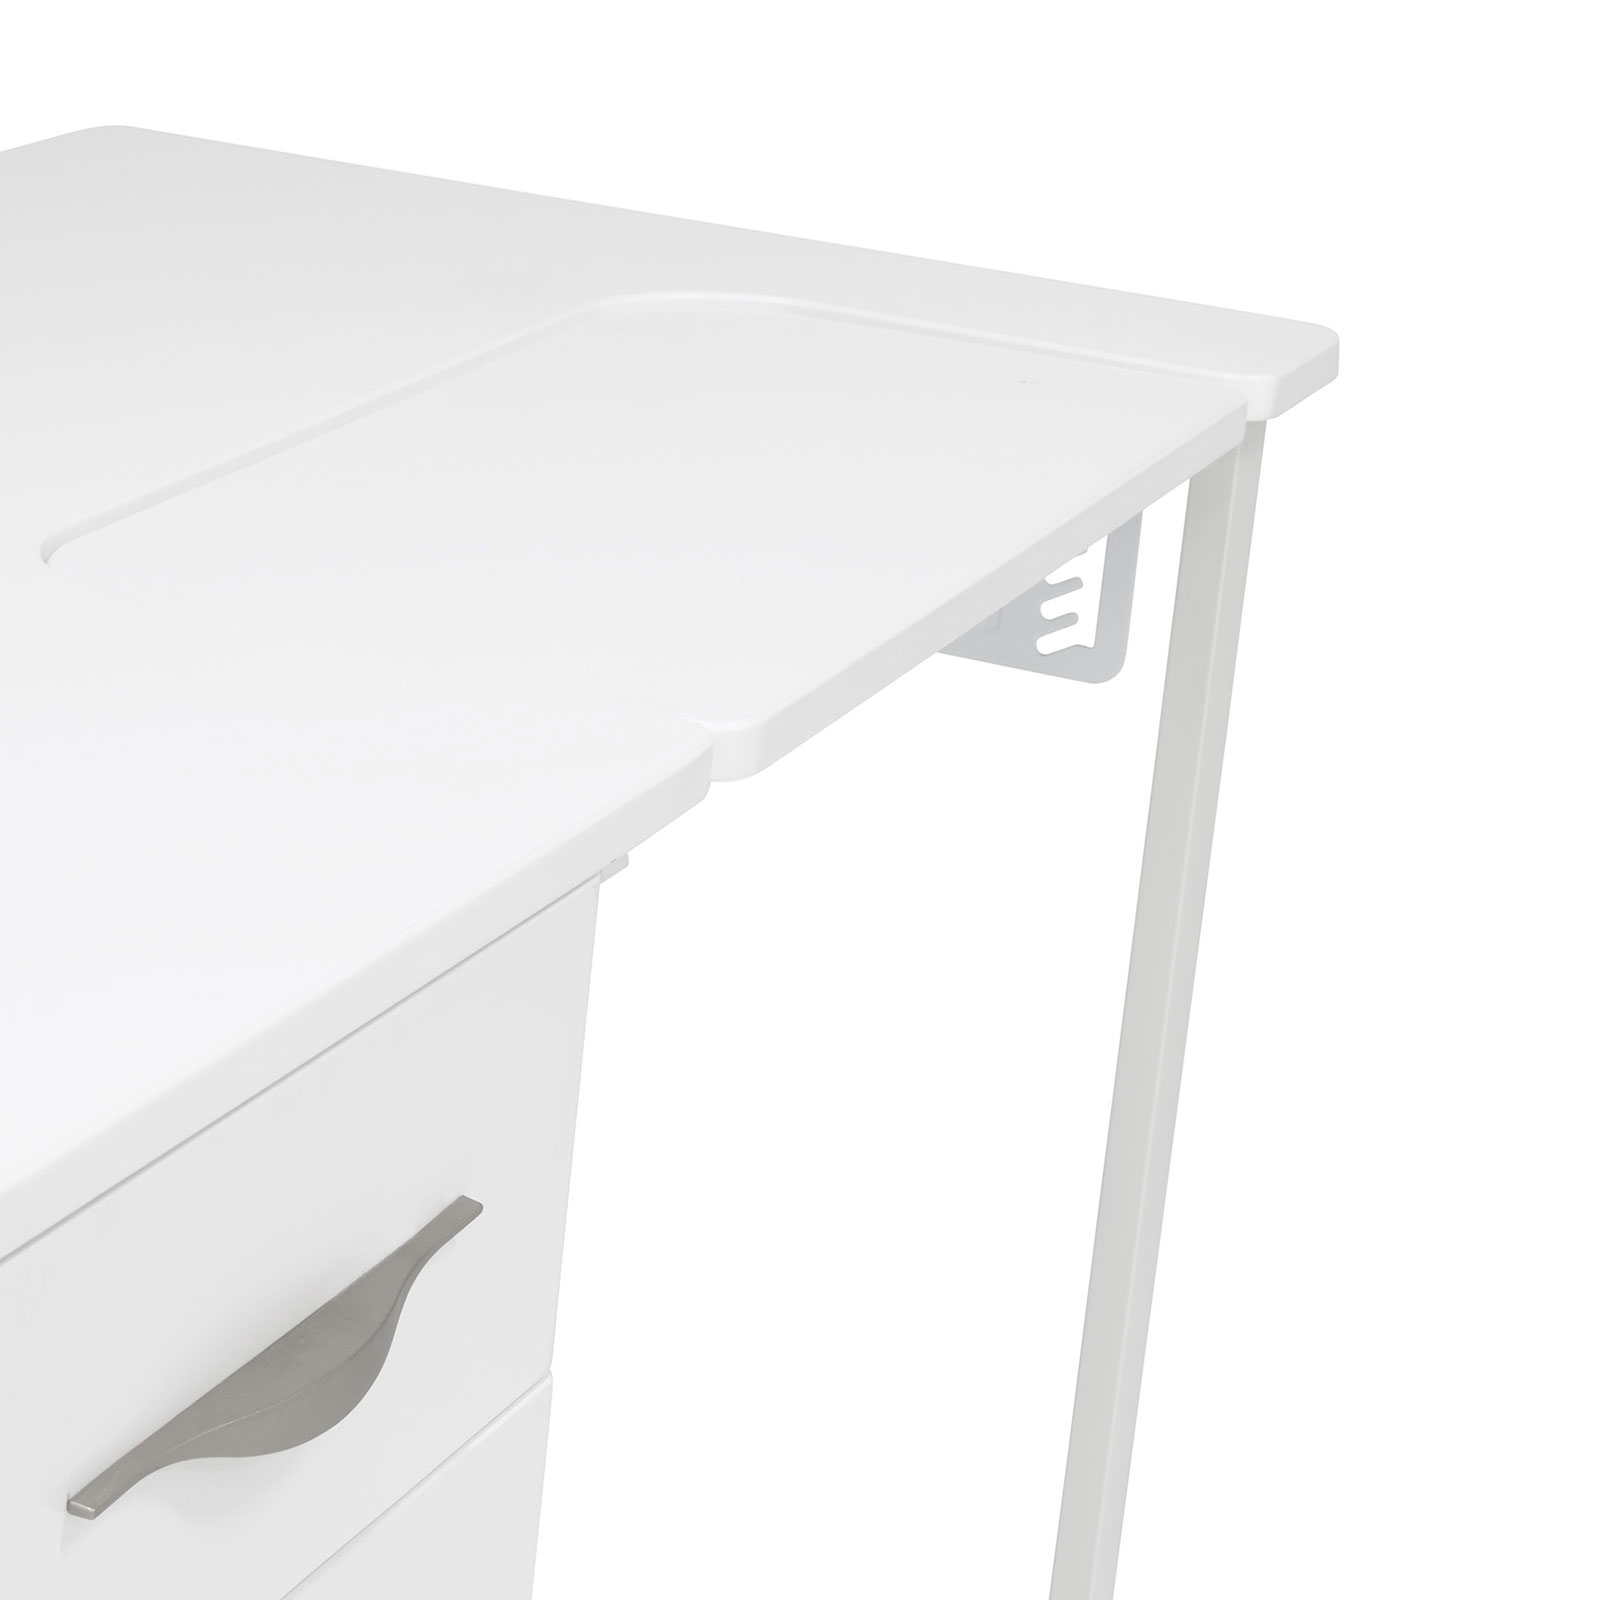 13398-Pro-Line-Sewing-Table-detail1b